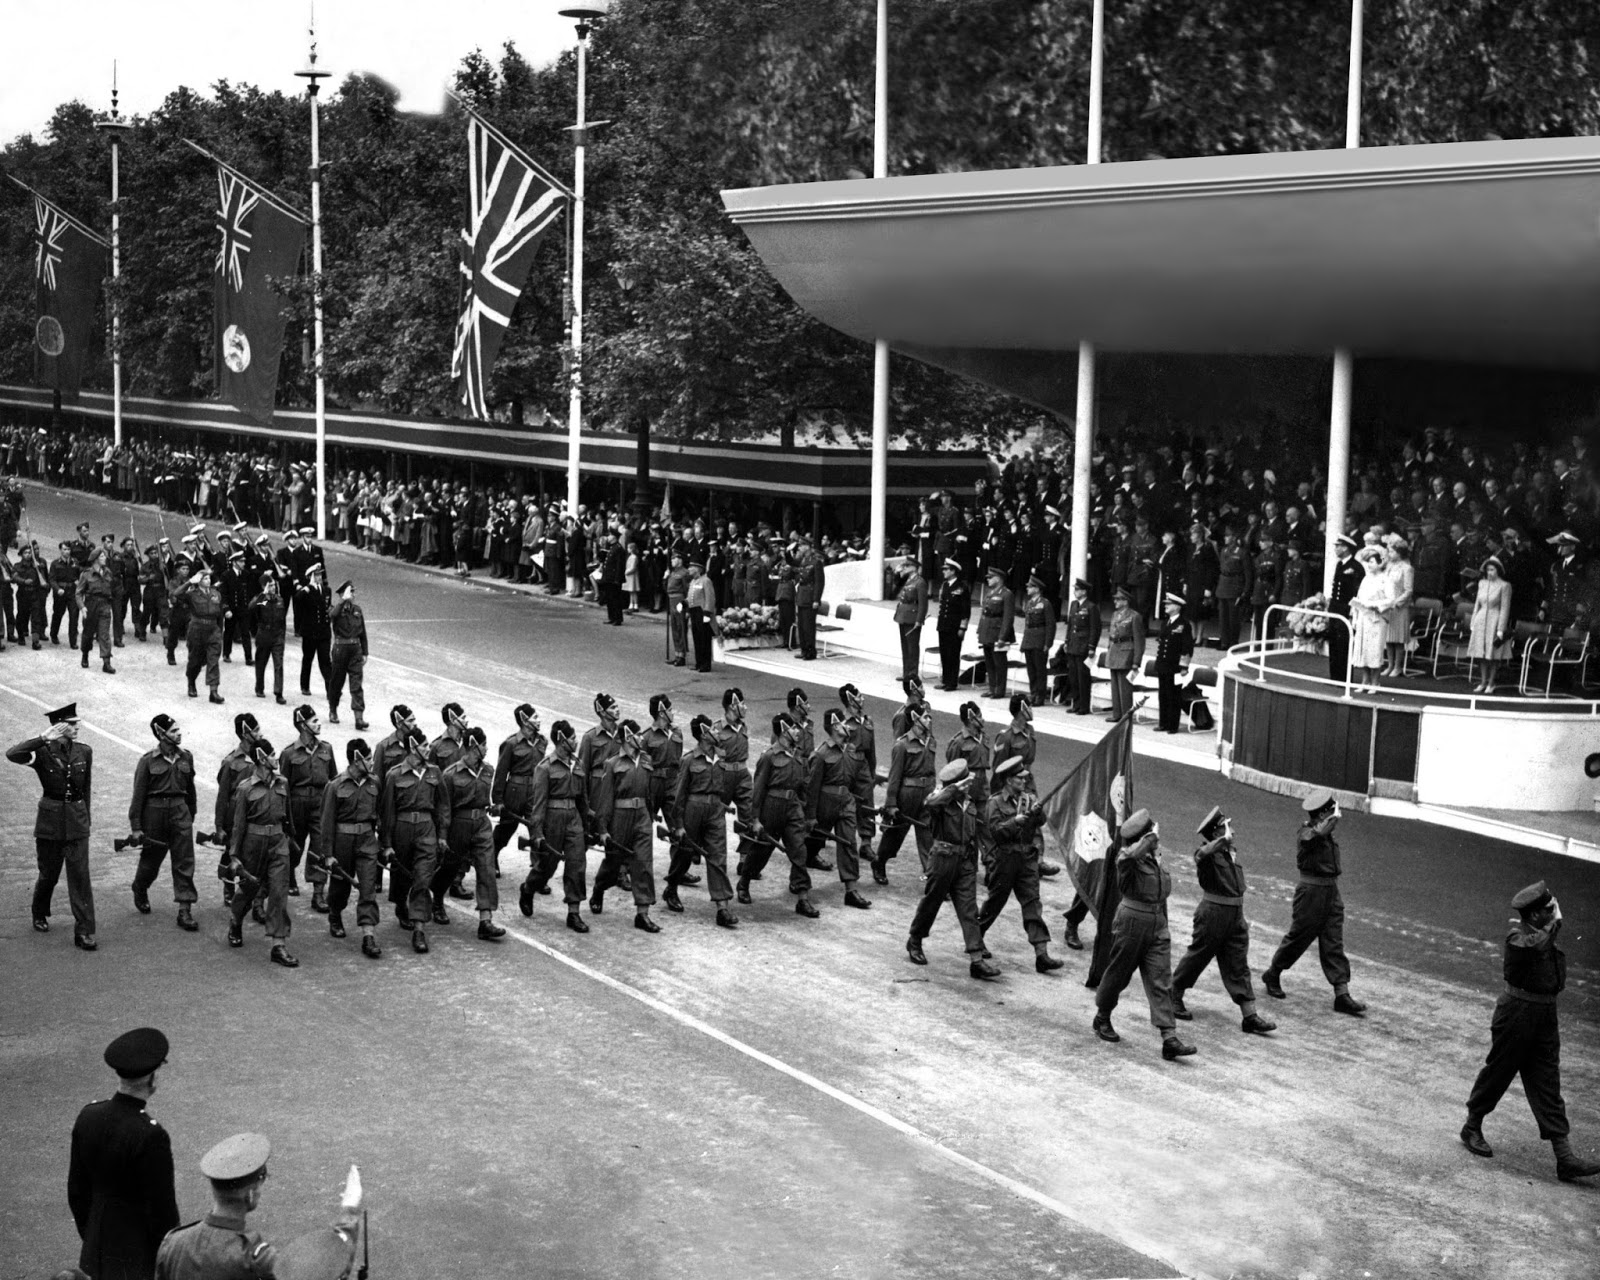 photo essay history lessons perhaps the allied victory parade in london held on 10th of 1946 was the swan song of the british empire before it started unraveling a year later